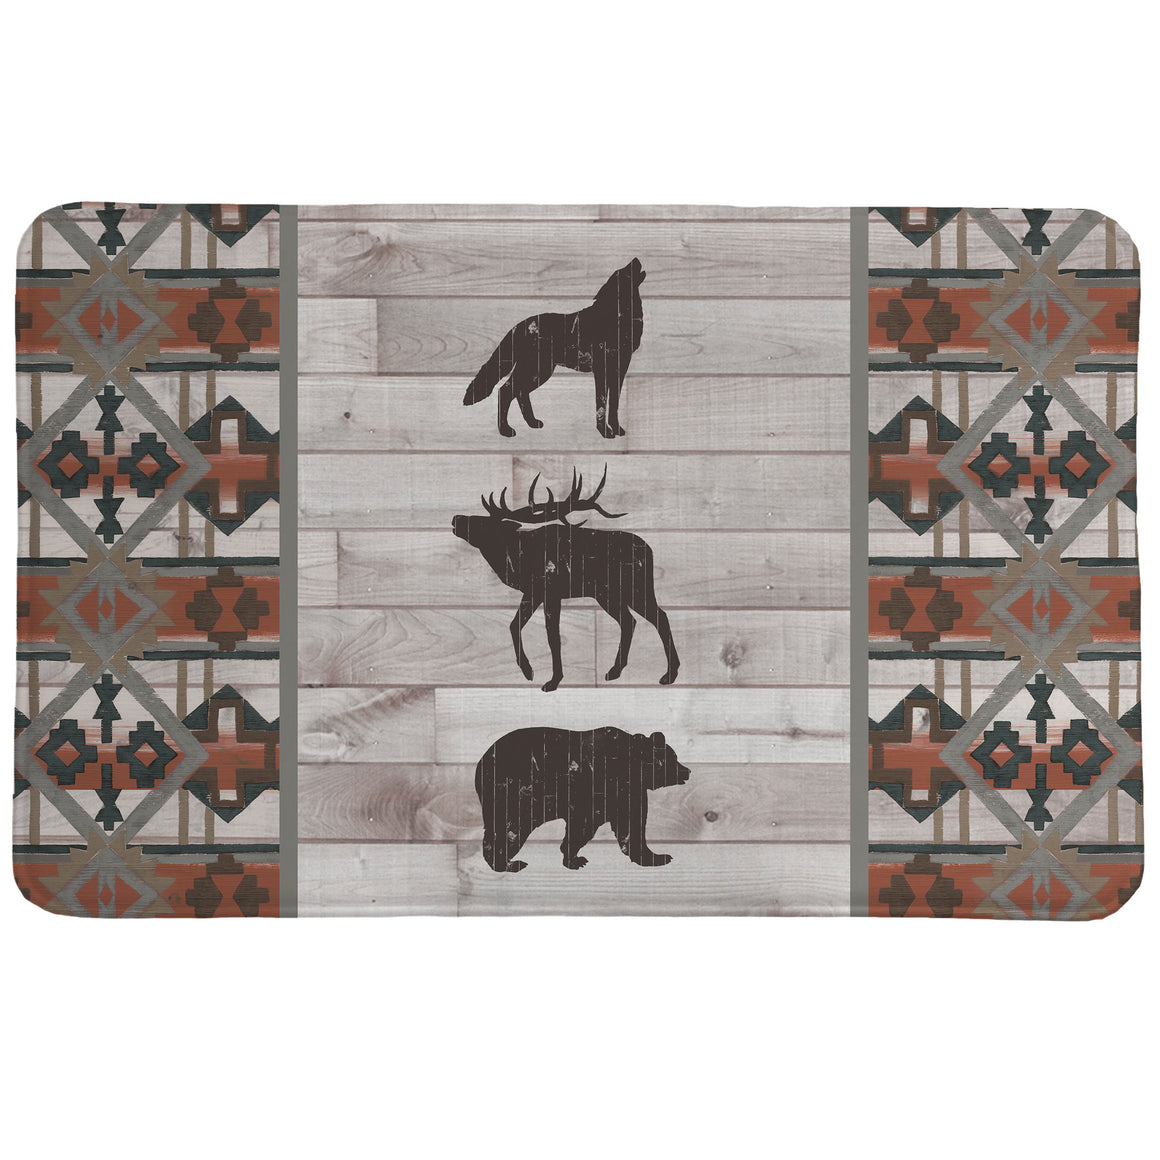 Southwest Lodge Memory Foam Rug features a southwestern pattern and wild animal icons set on a gray wooden planked background with terra cotta colored accents.